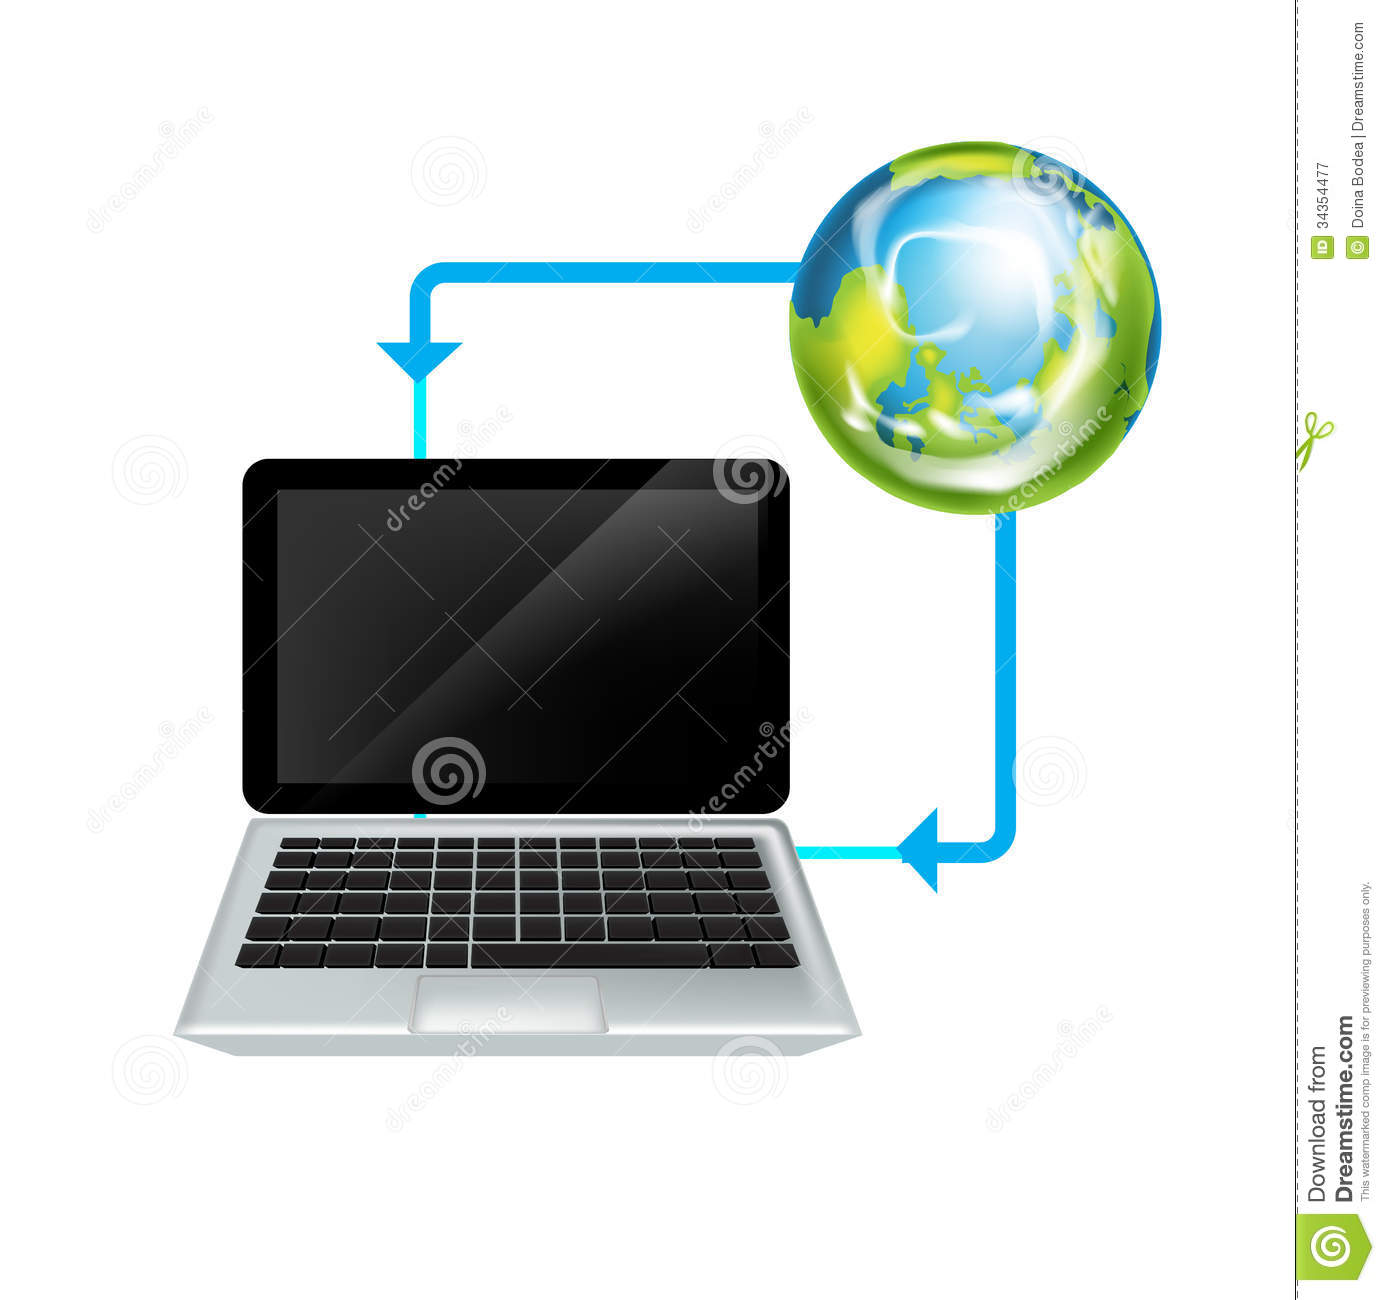 Laptop and earth globeinternet symbol stock vector image 34354477 royalty free stock photo biocorpaavc